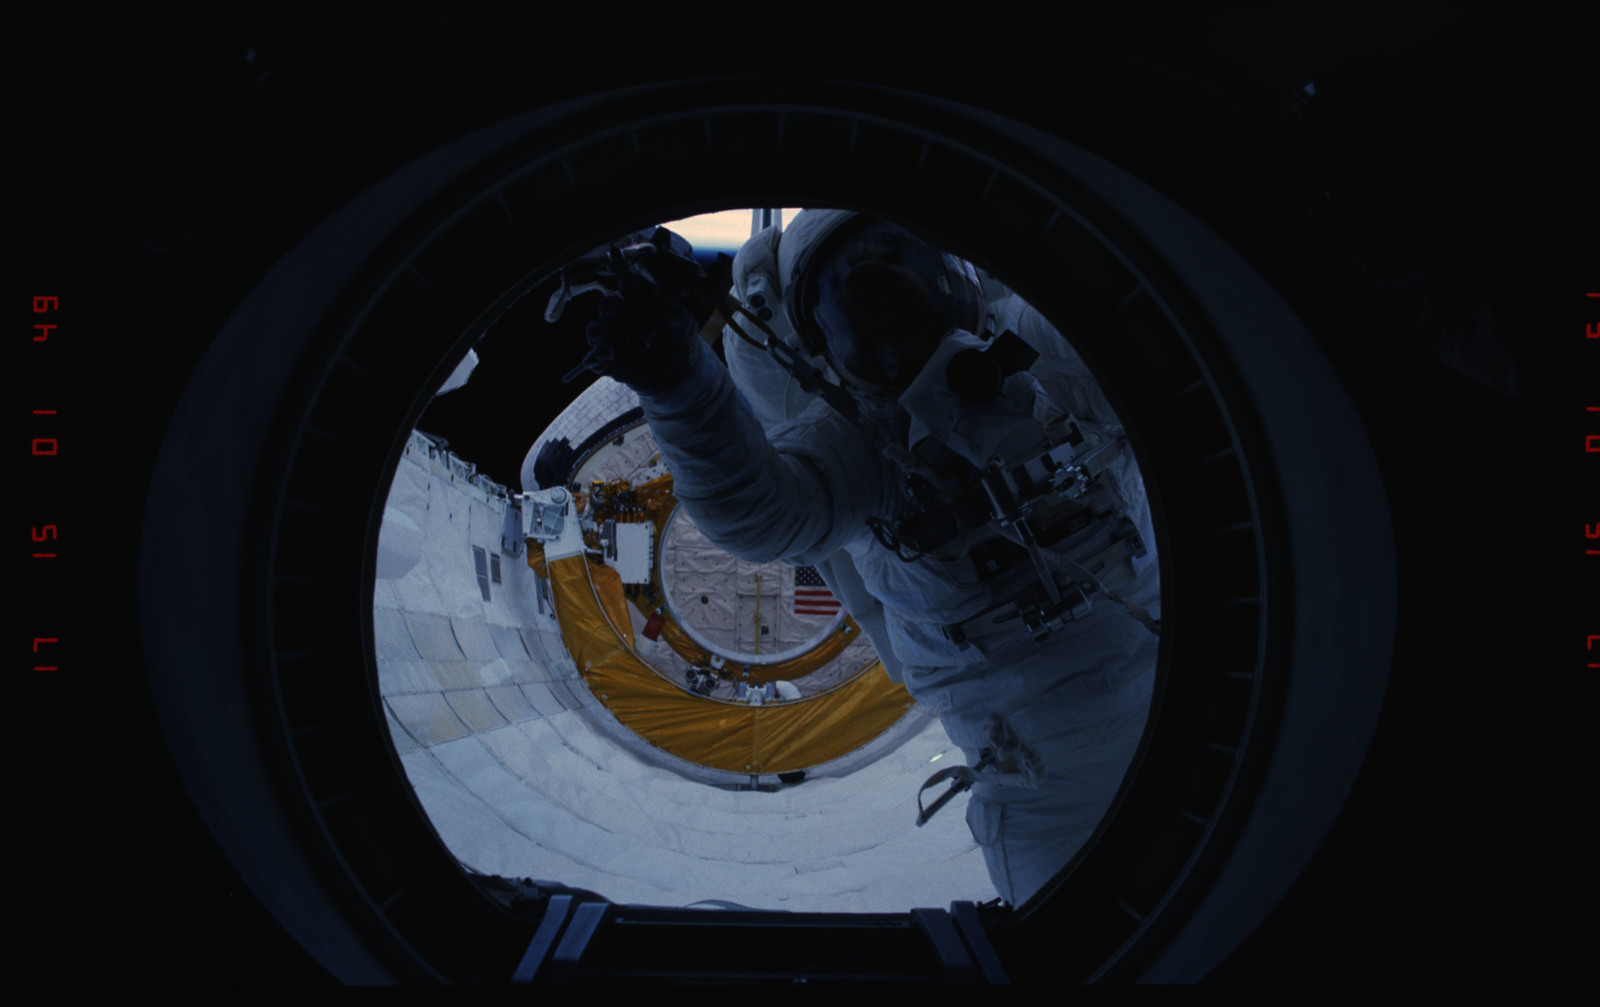 STS054-05-015 - STS-054 - Views of EVA Crewmembers in the payload bay returning to middeck air lock.